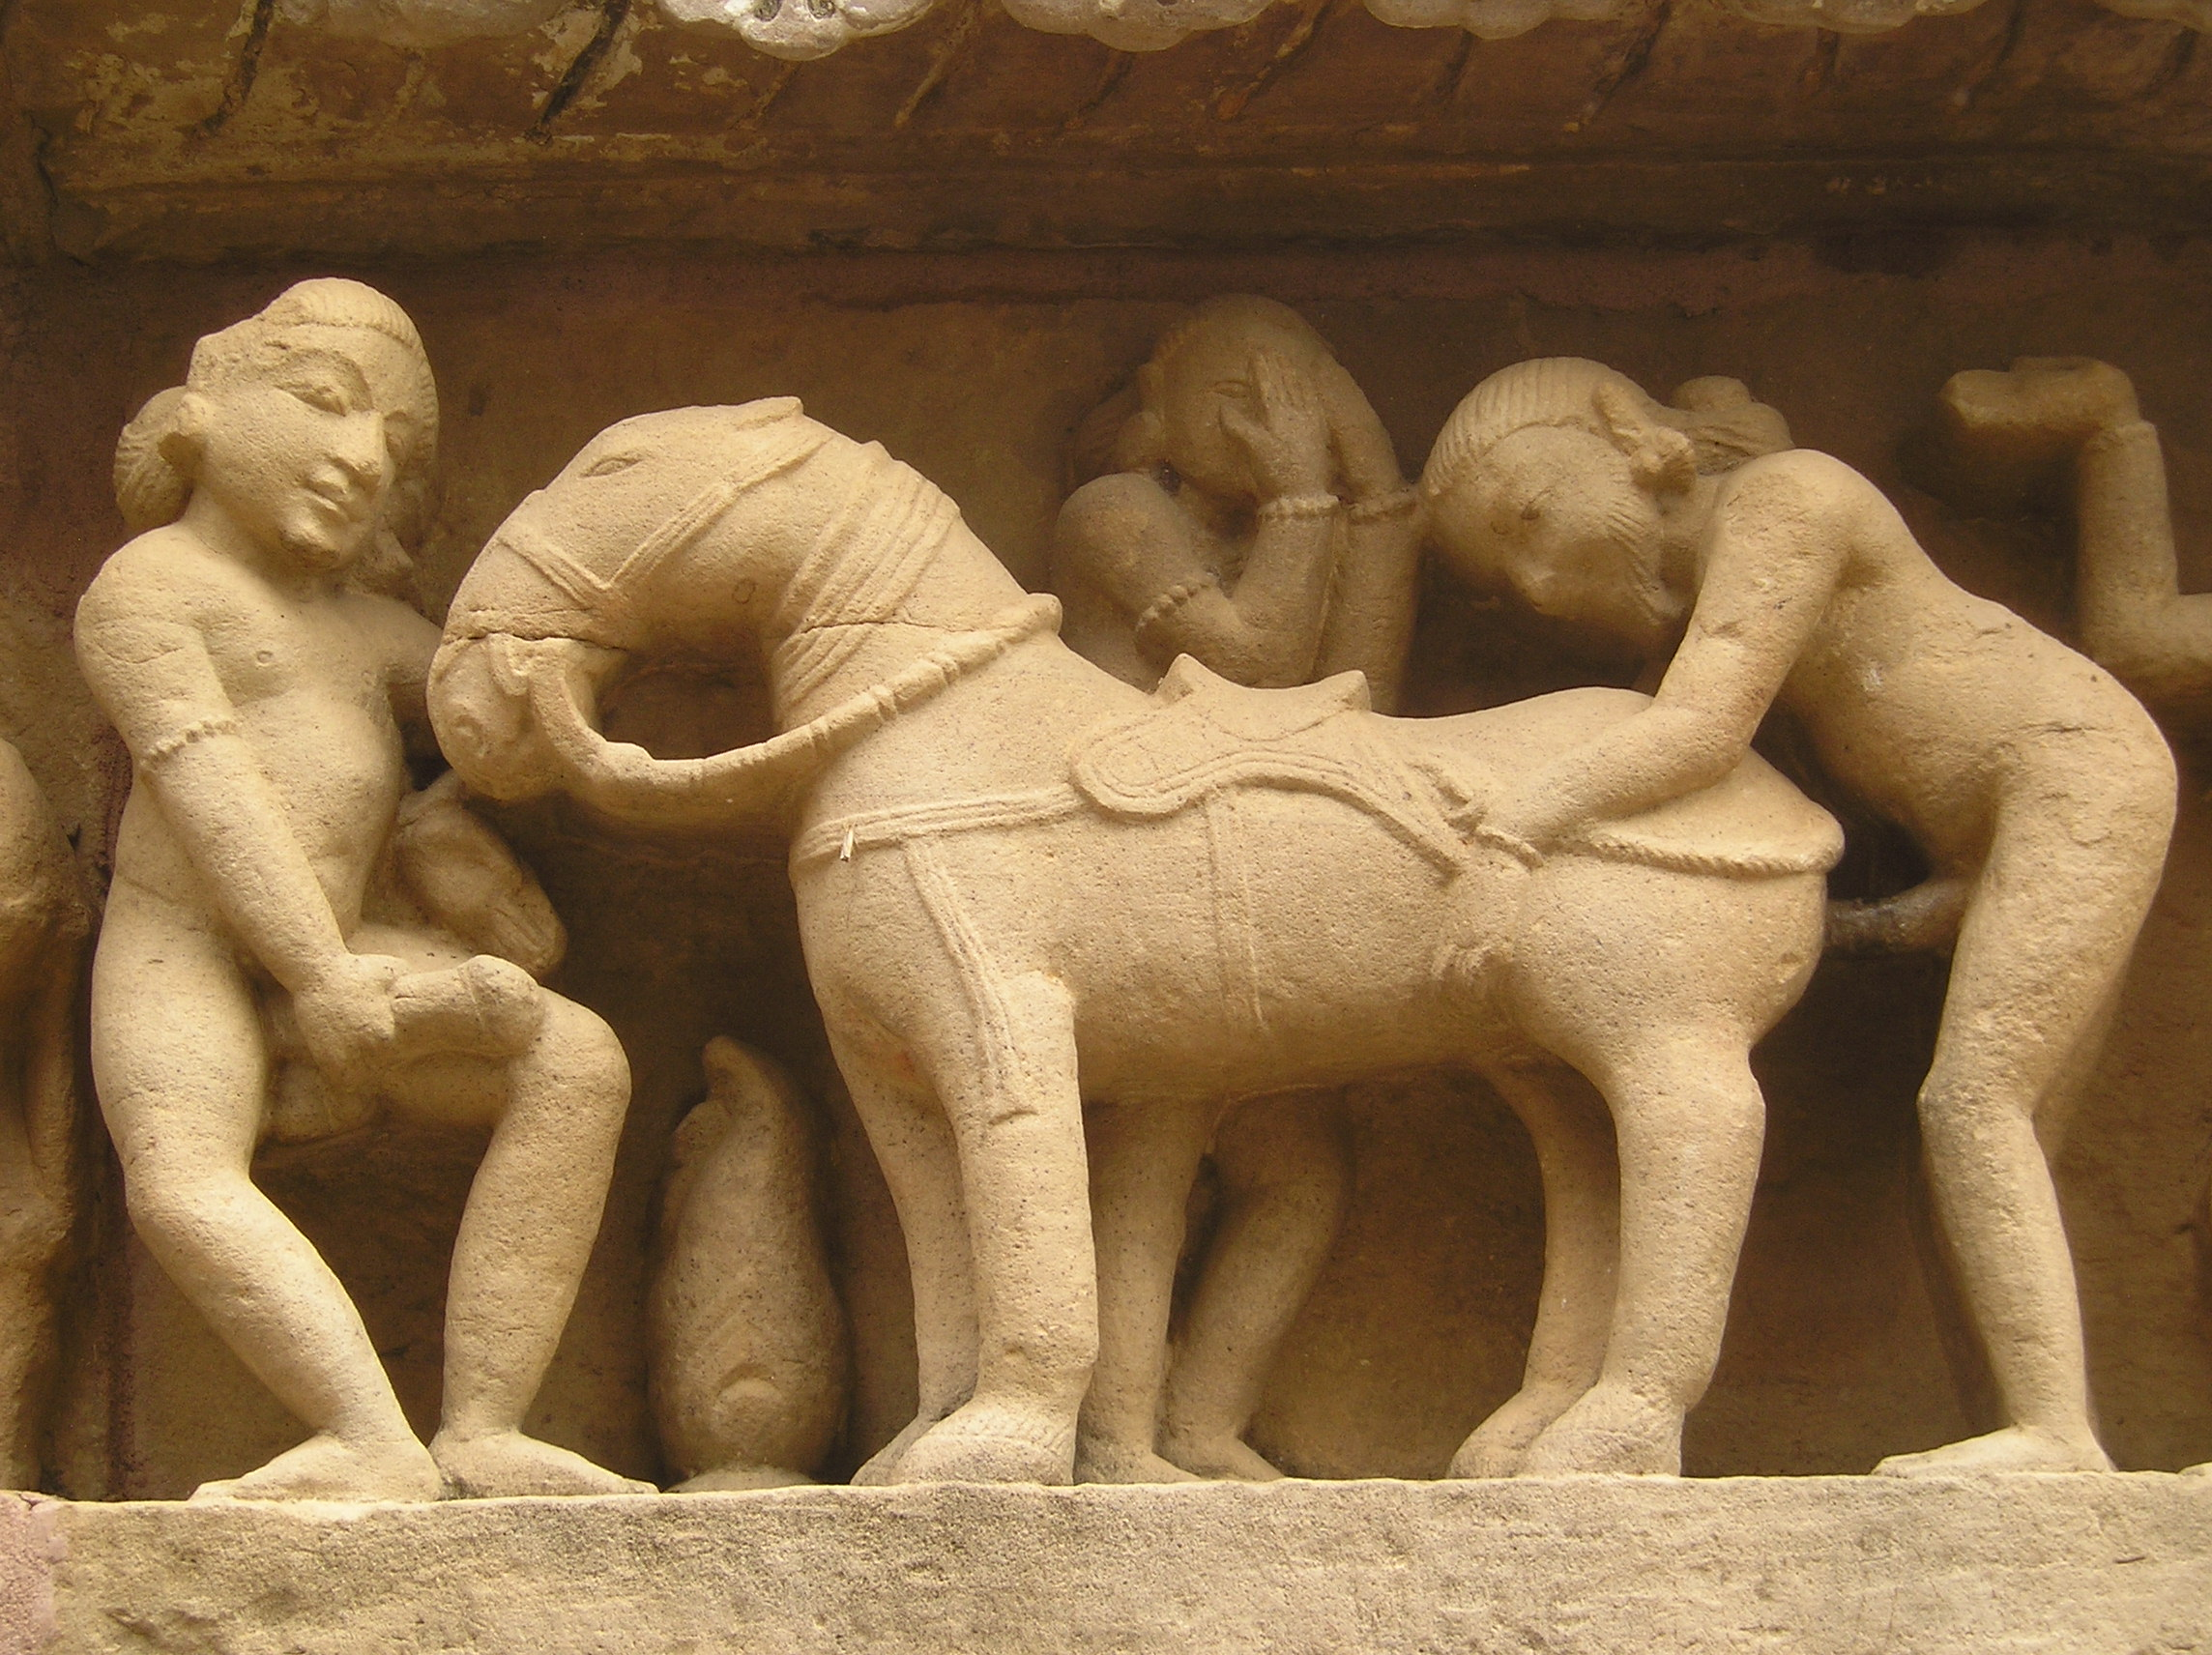 http://upload.wikimedia.org/wikipedia/commons/6/62/Khajuraho-Lakshmana_Temple_erotic_detal3.JPG